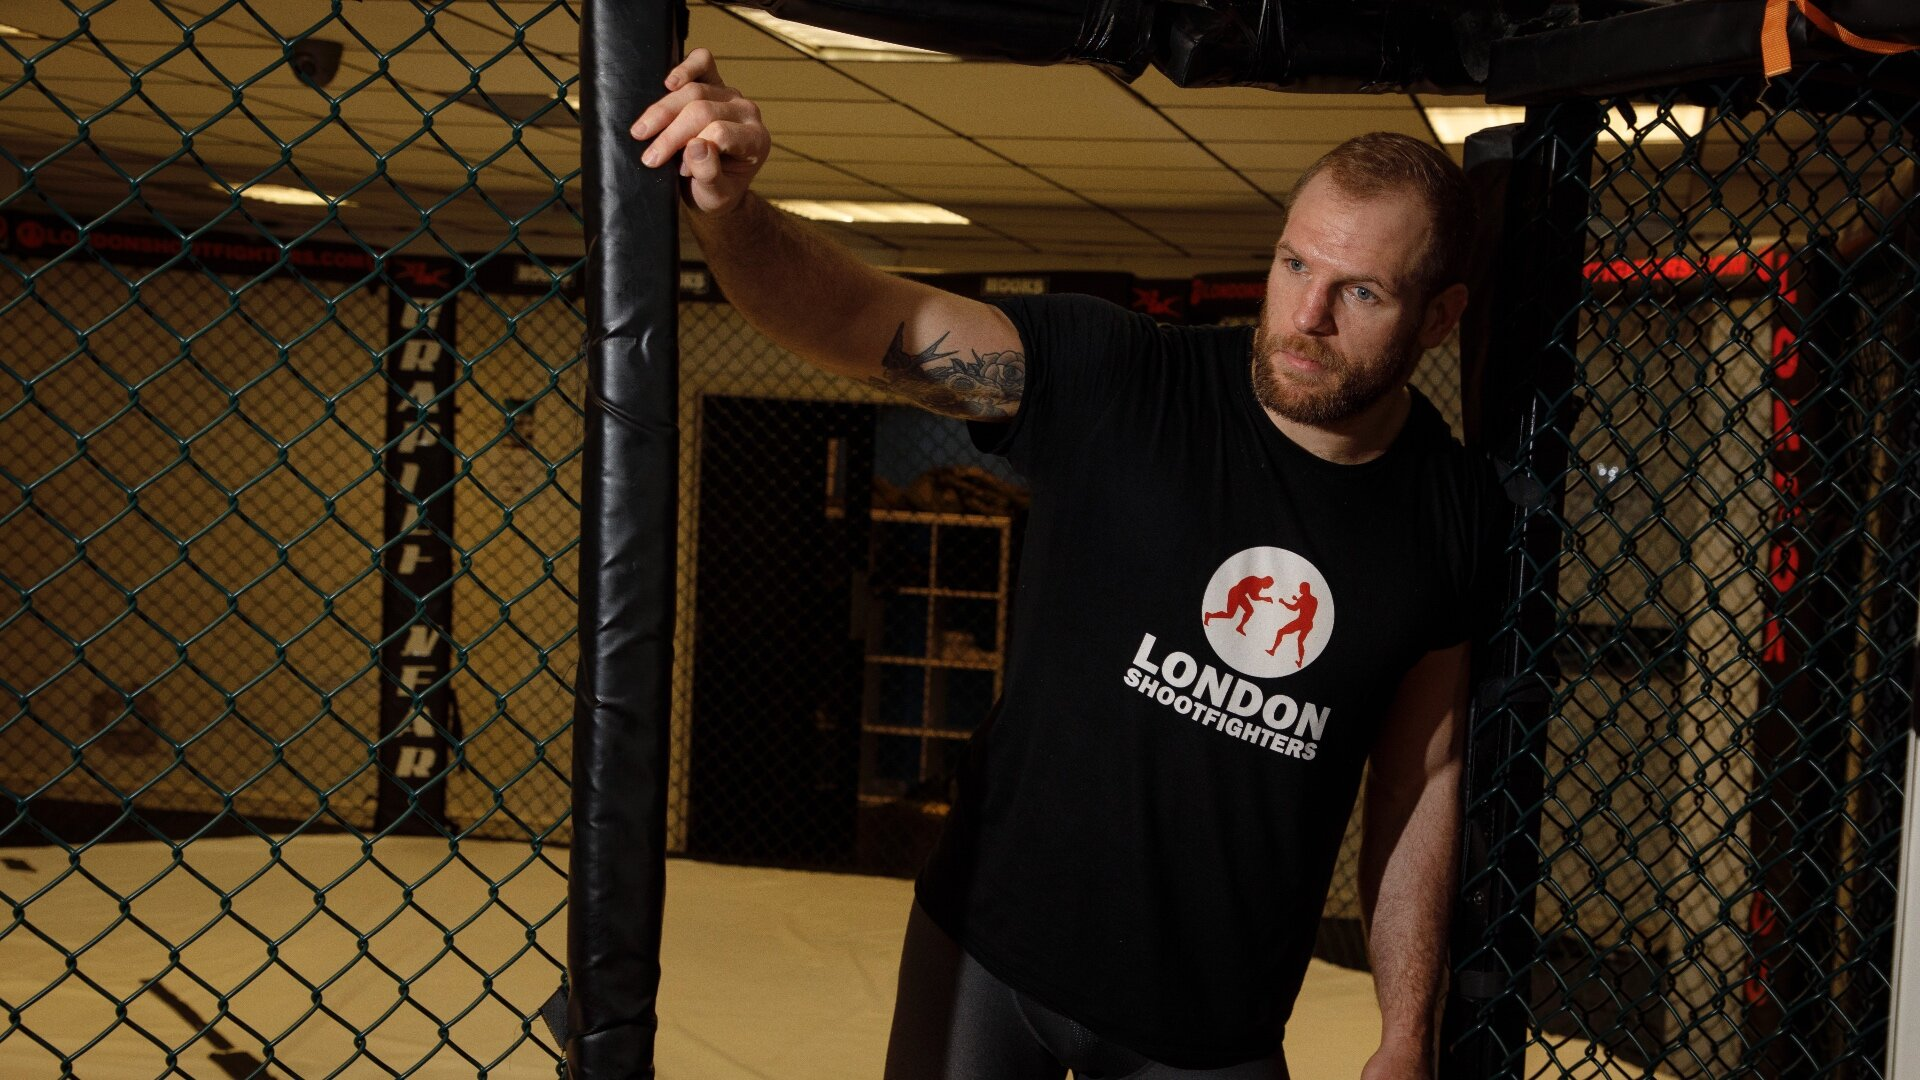 Haskell MMA fighting